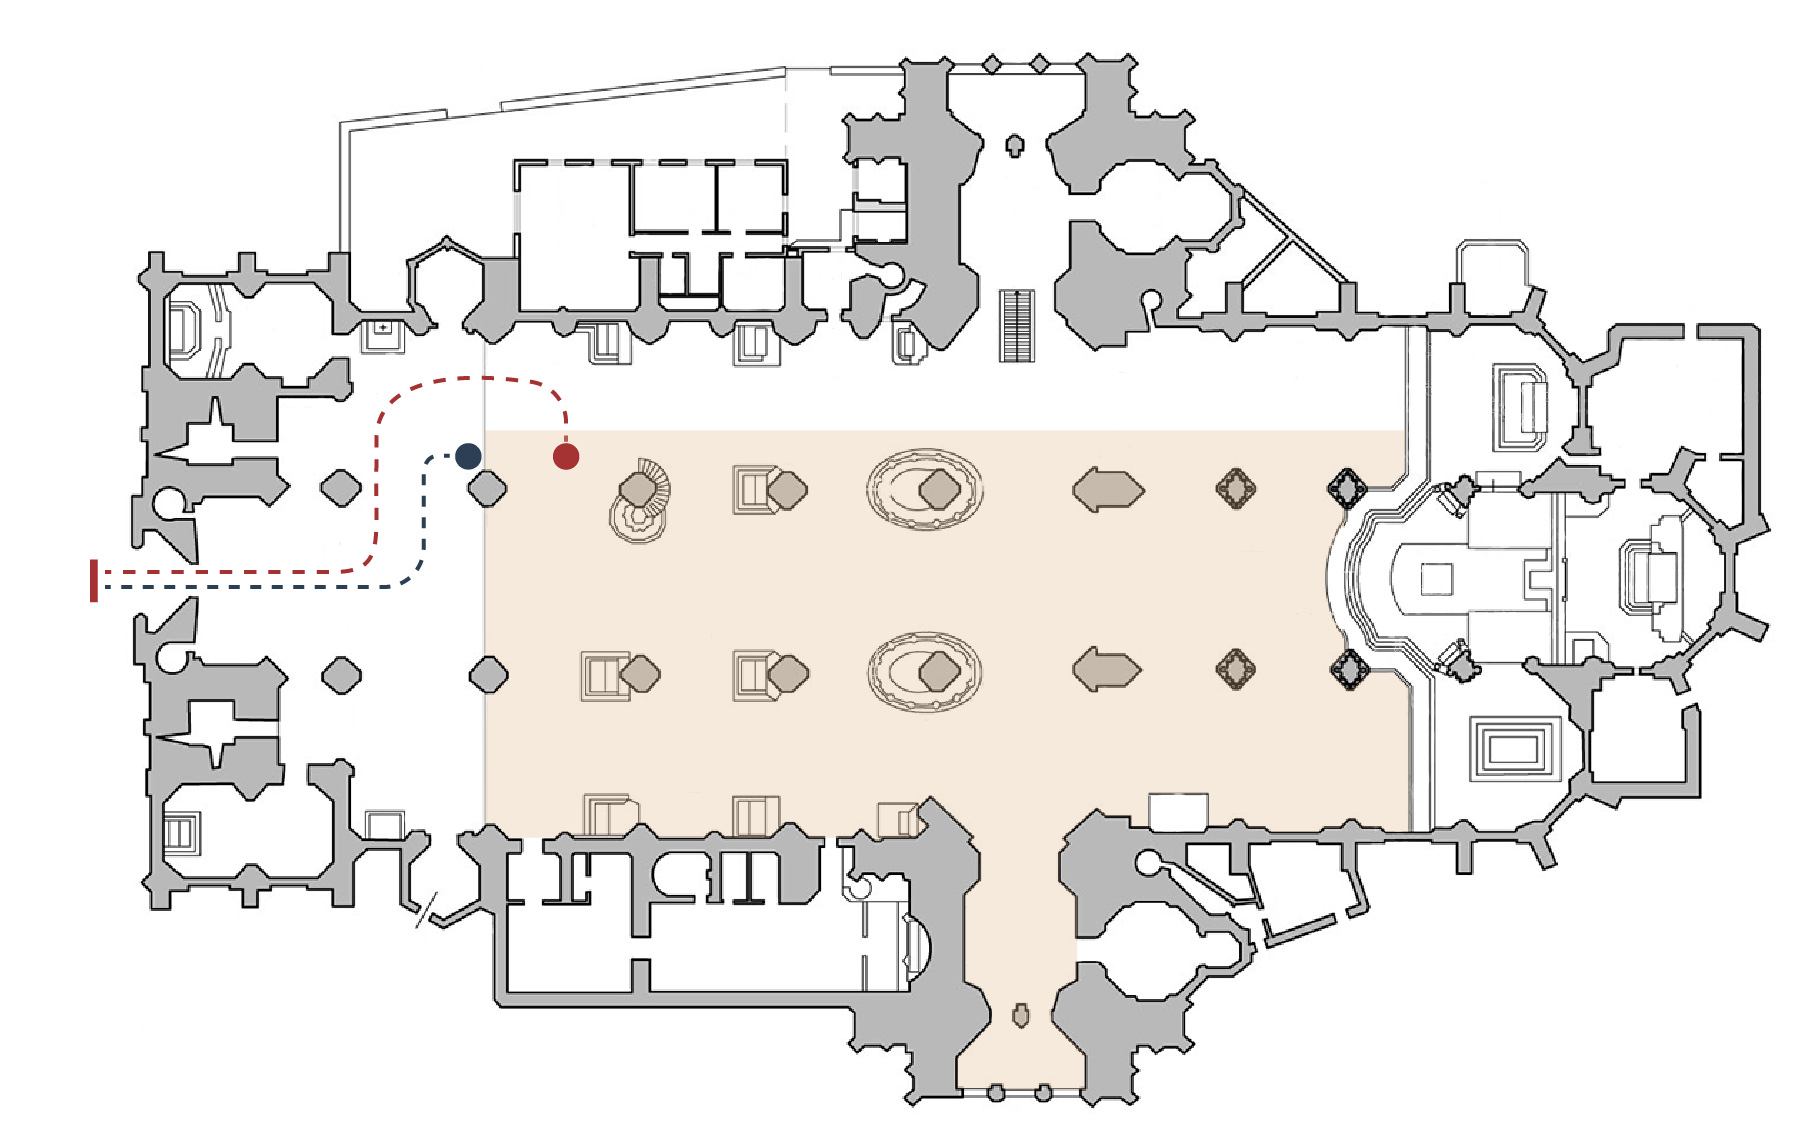 Floor plan of the cathedral